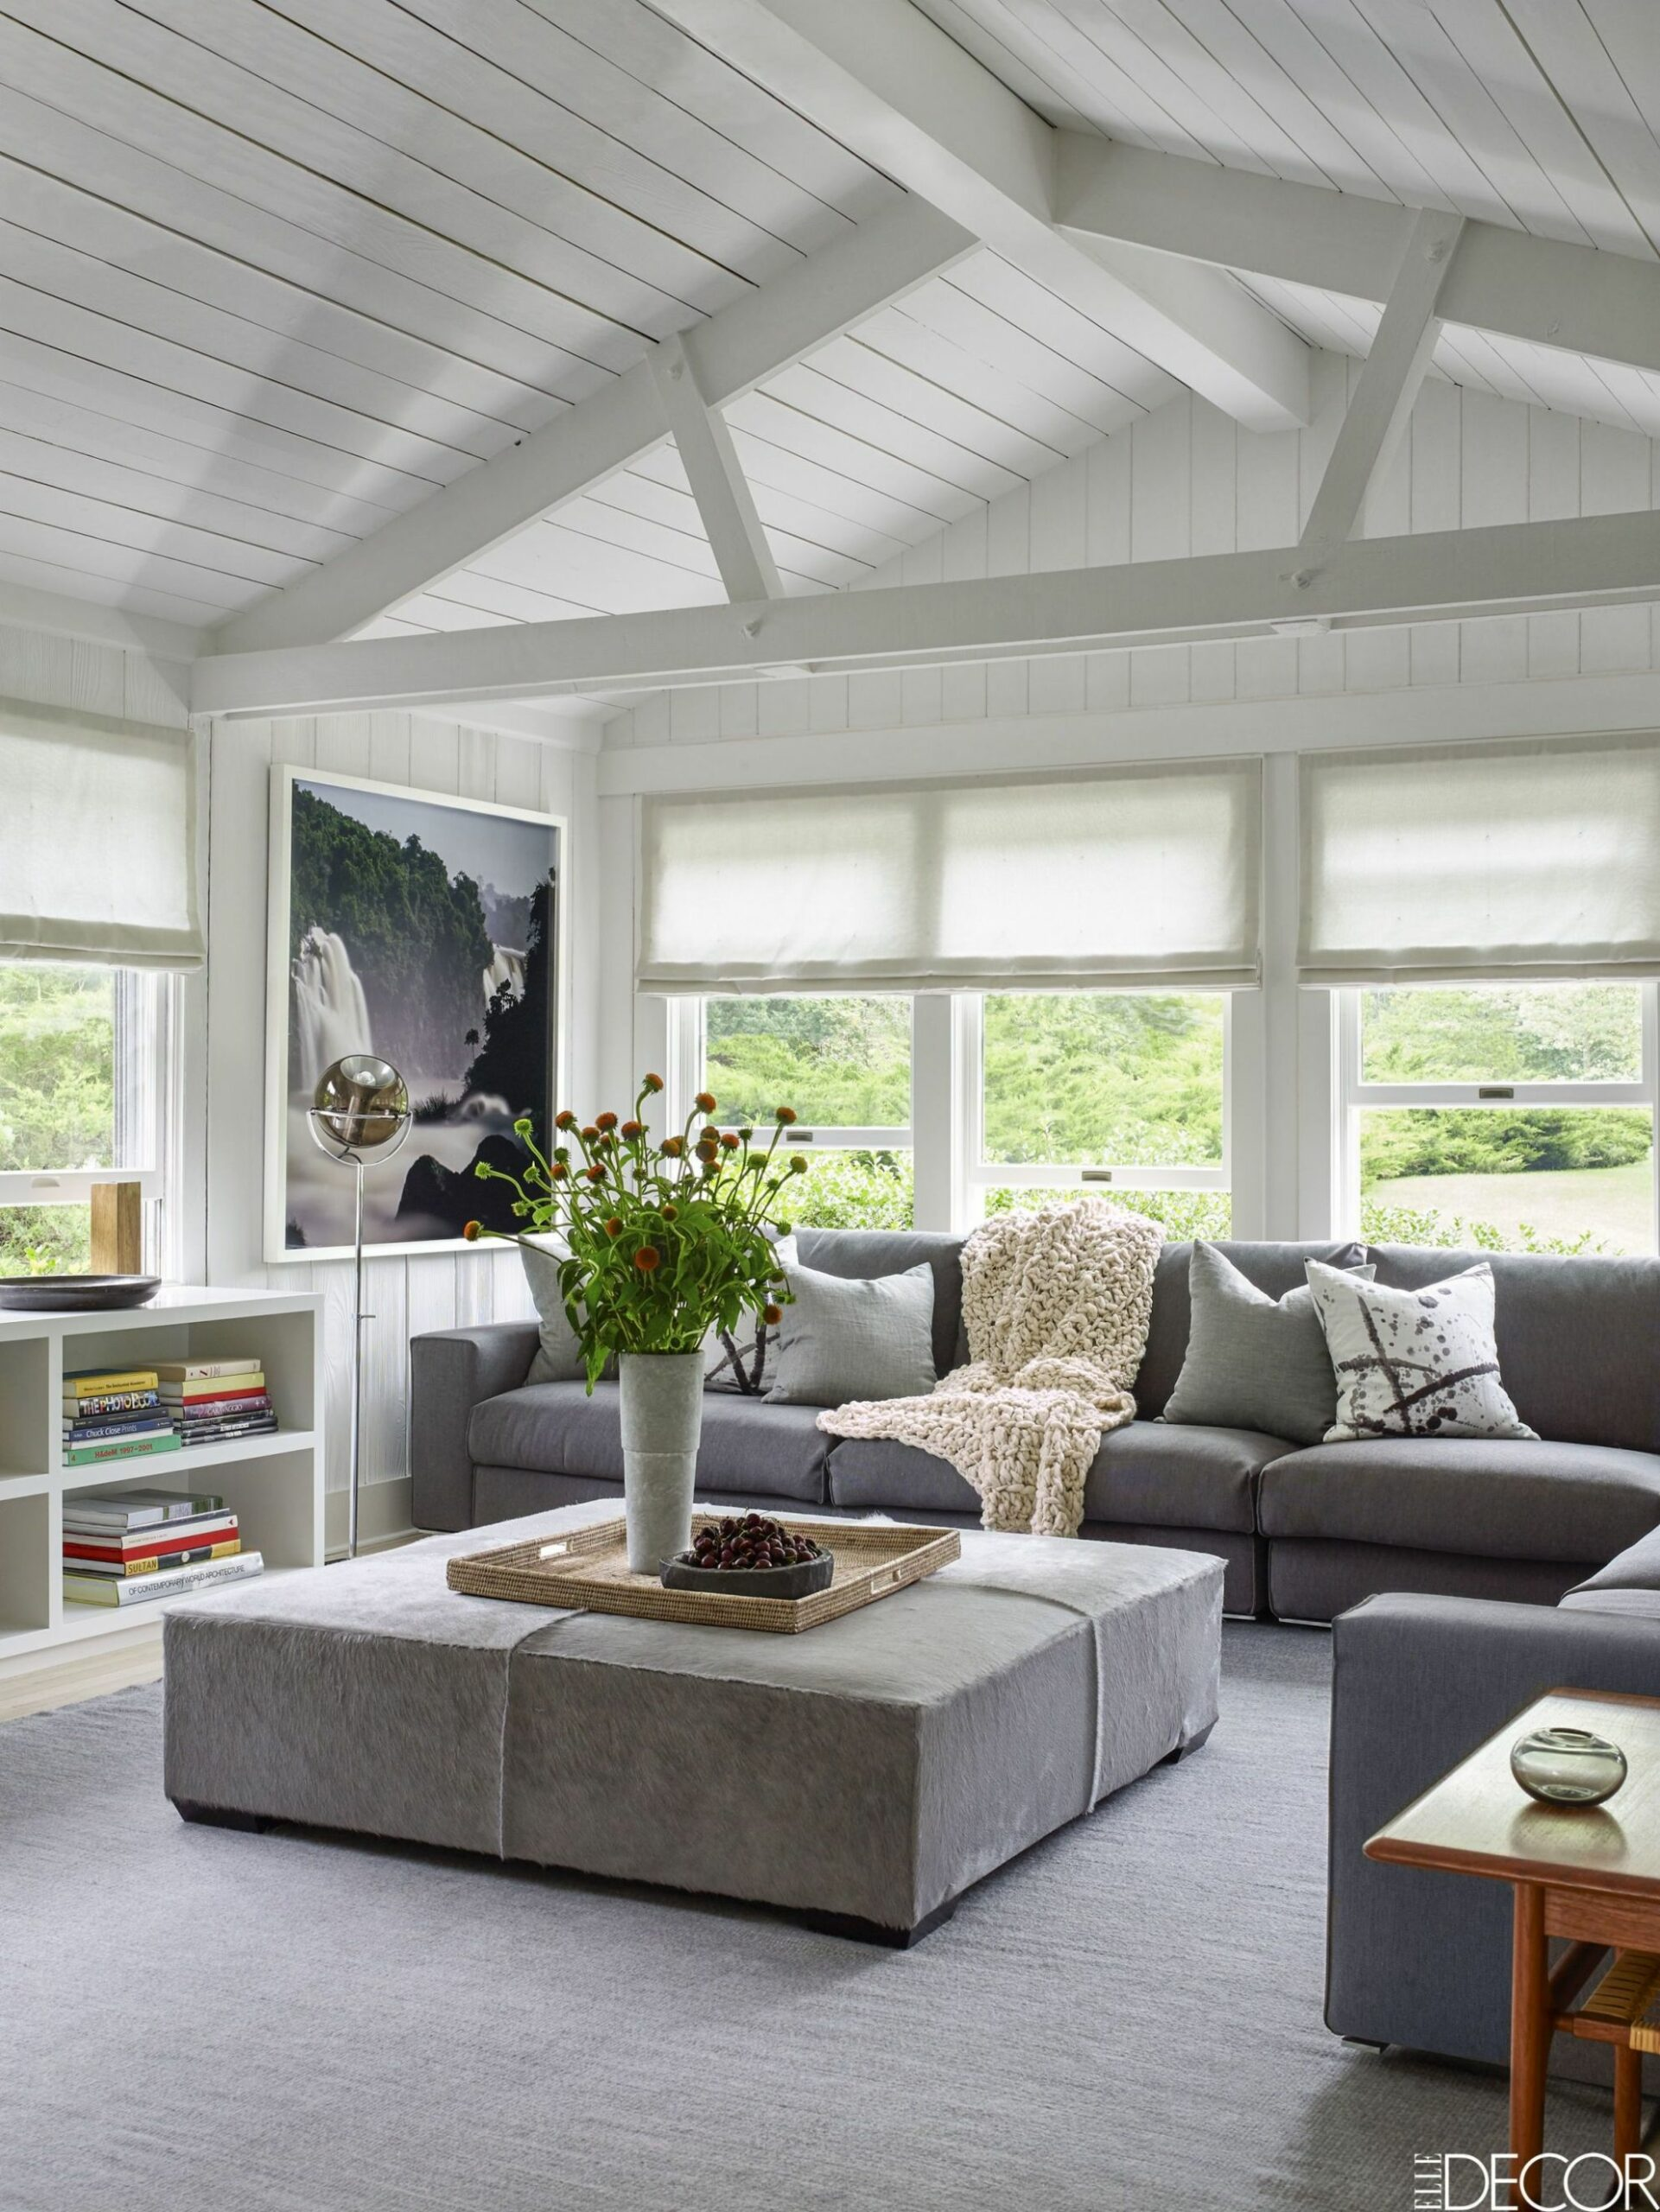 10 Best Gray Living Room Ideas - How to Use Gray Paint and Decor ...